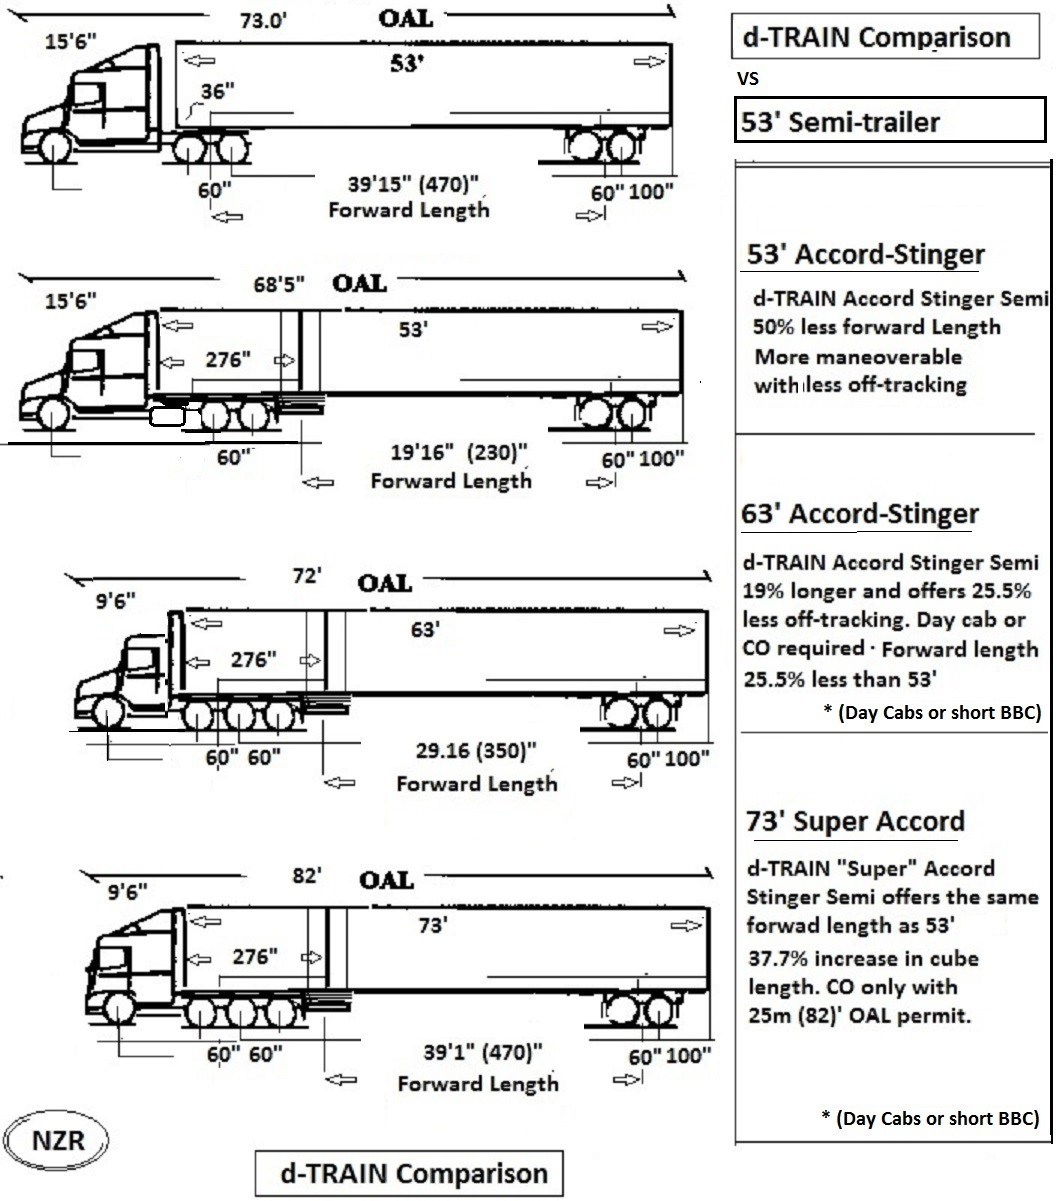 Tractor Trailer Length : Tractor trailer dimensions size pictures to pin on